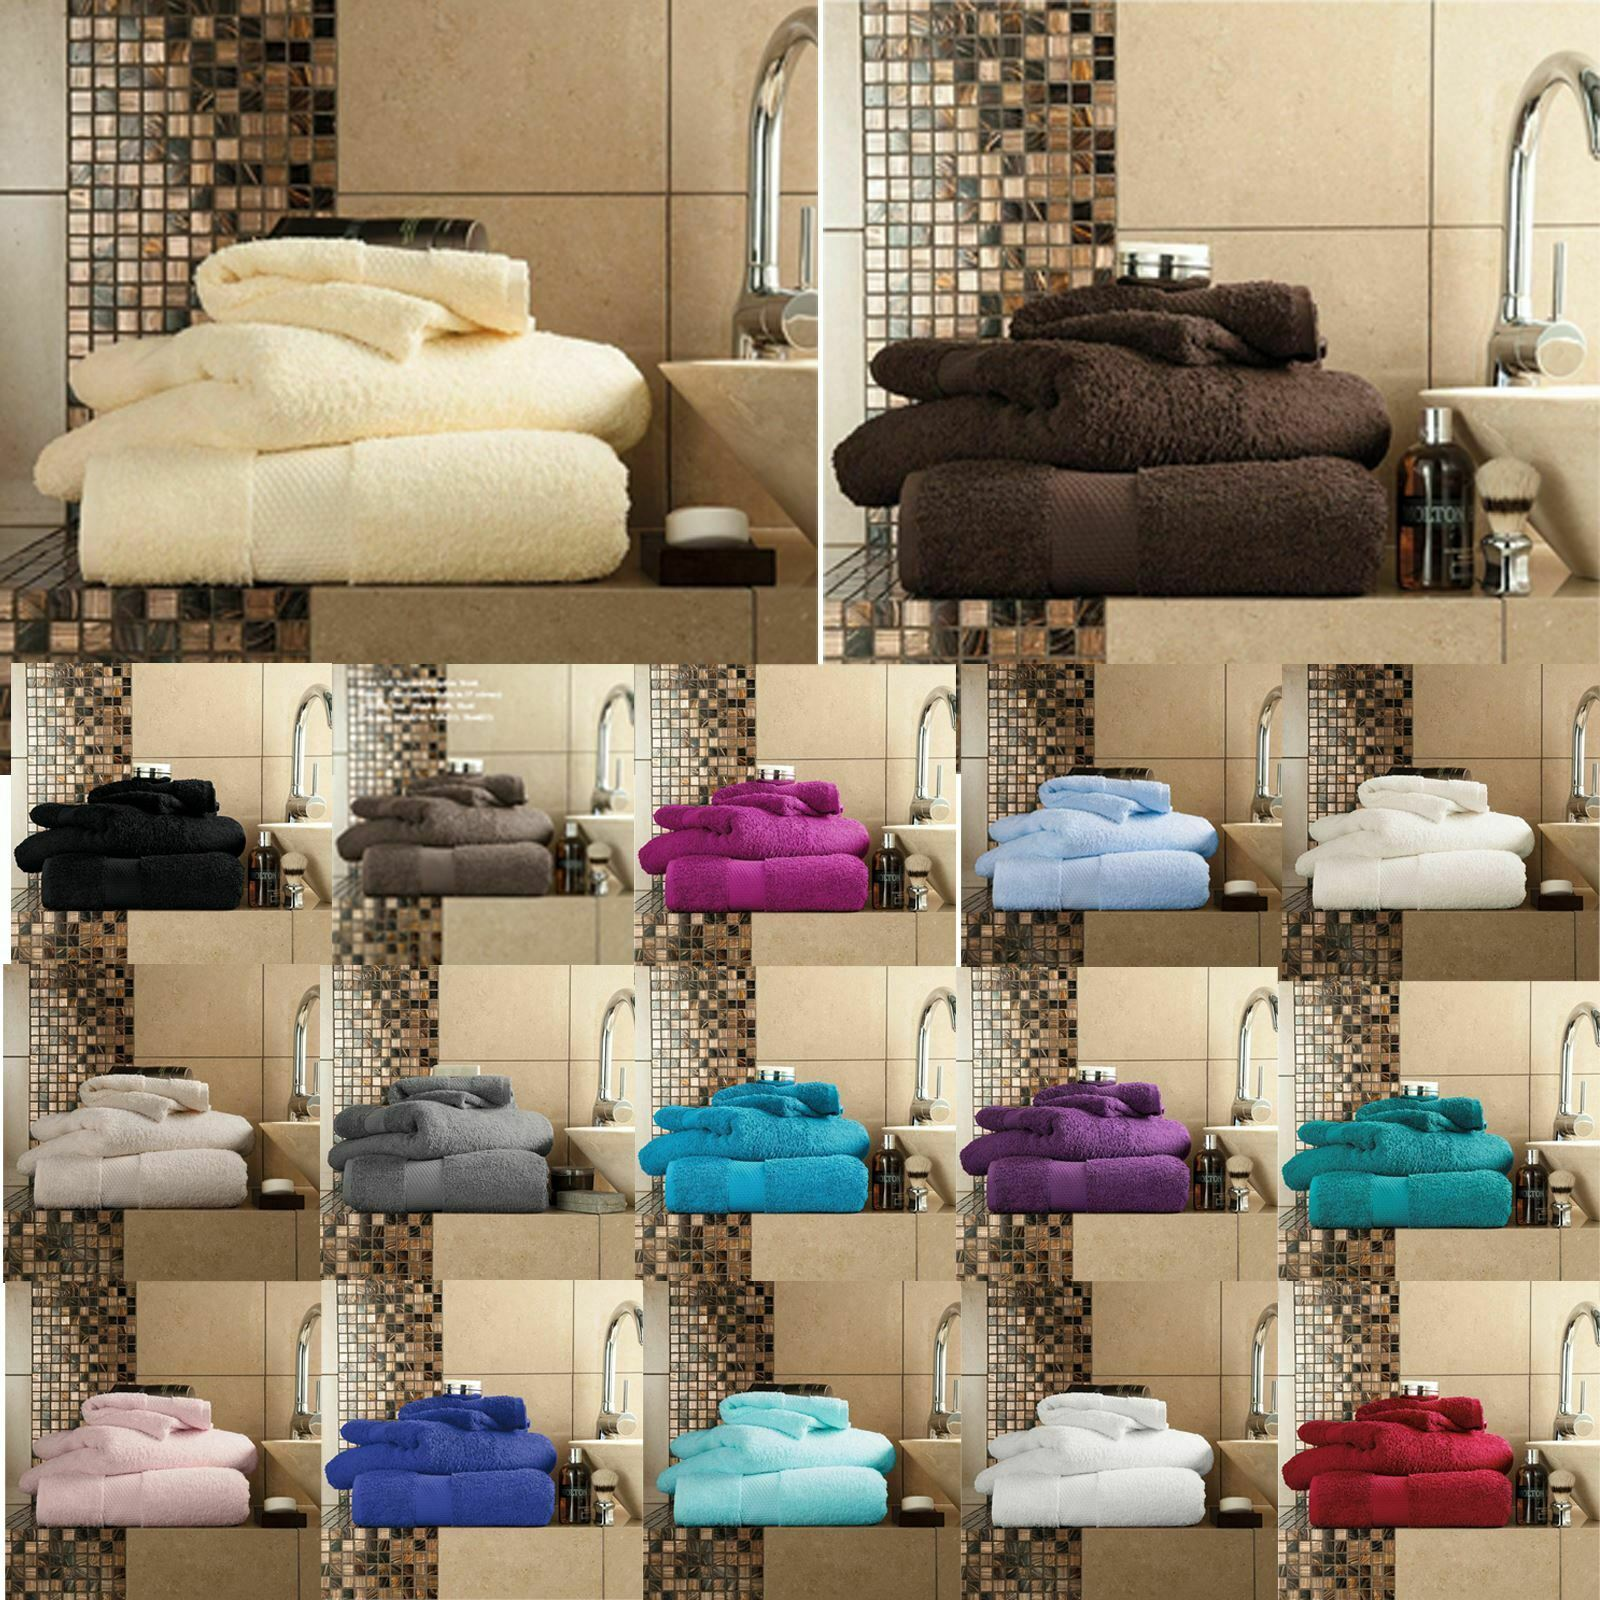 Luxury Miami Hand Bath Sheet Towel